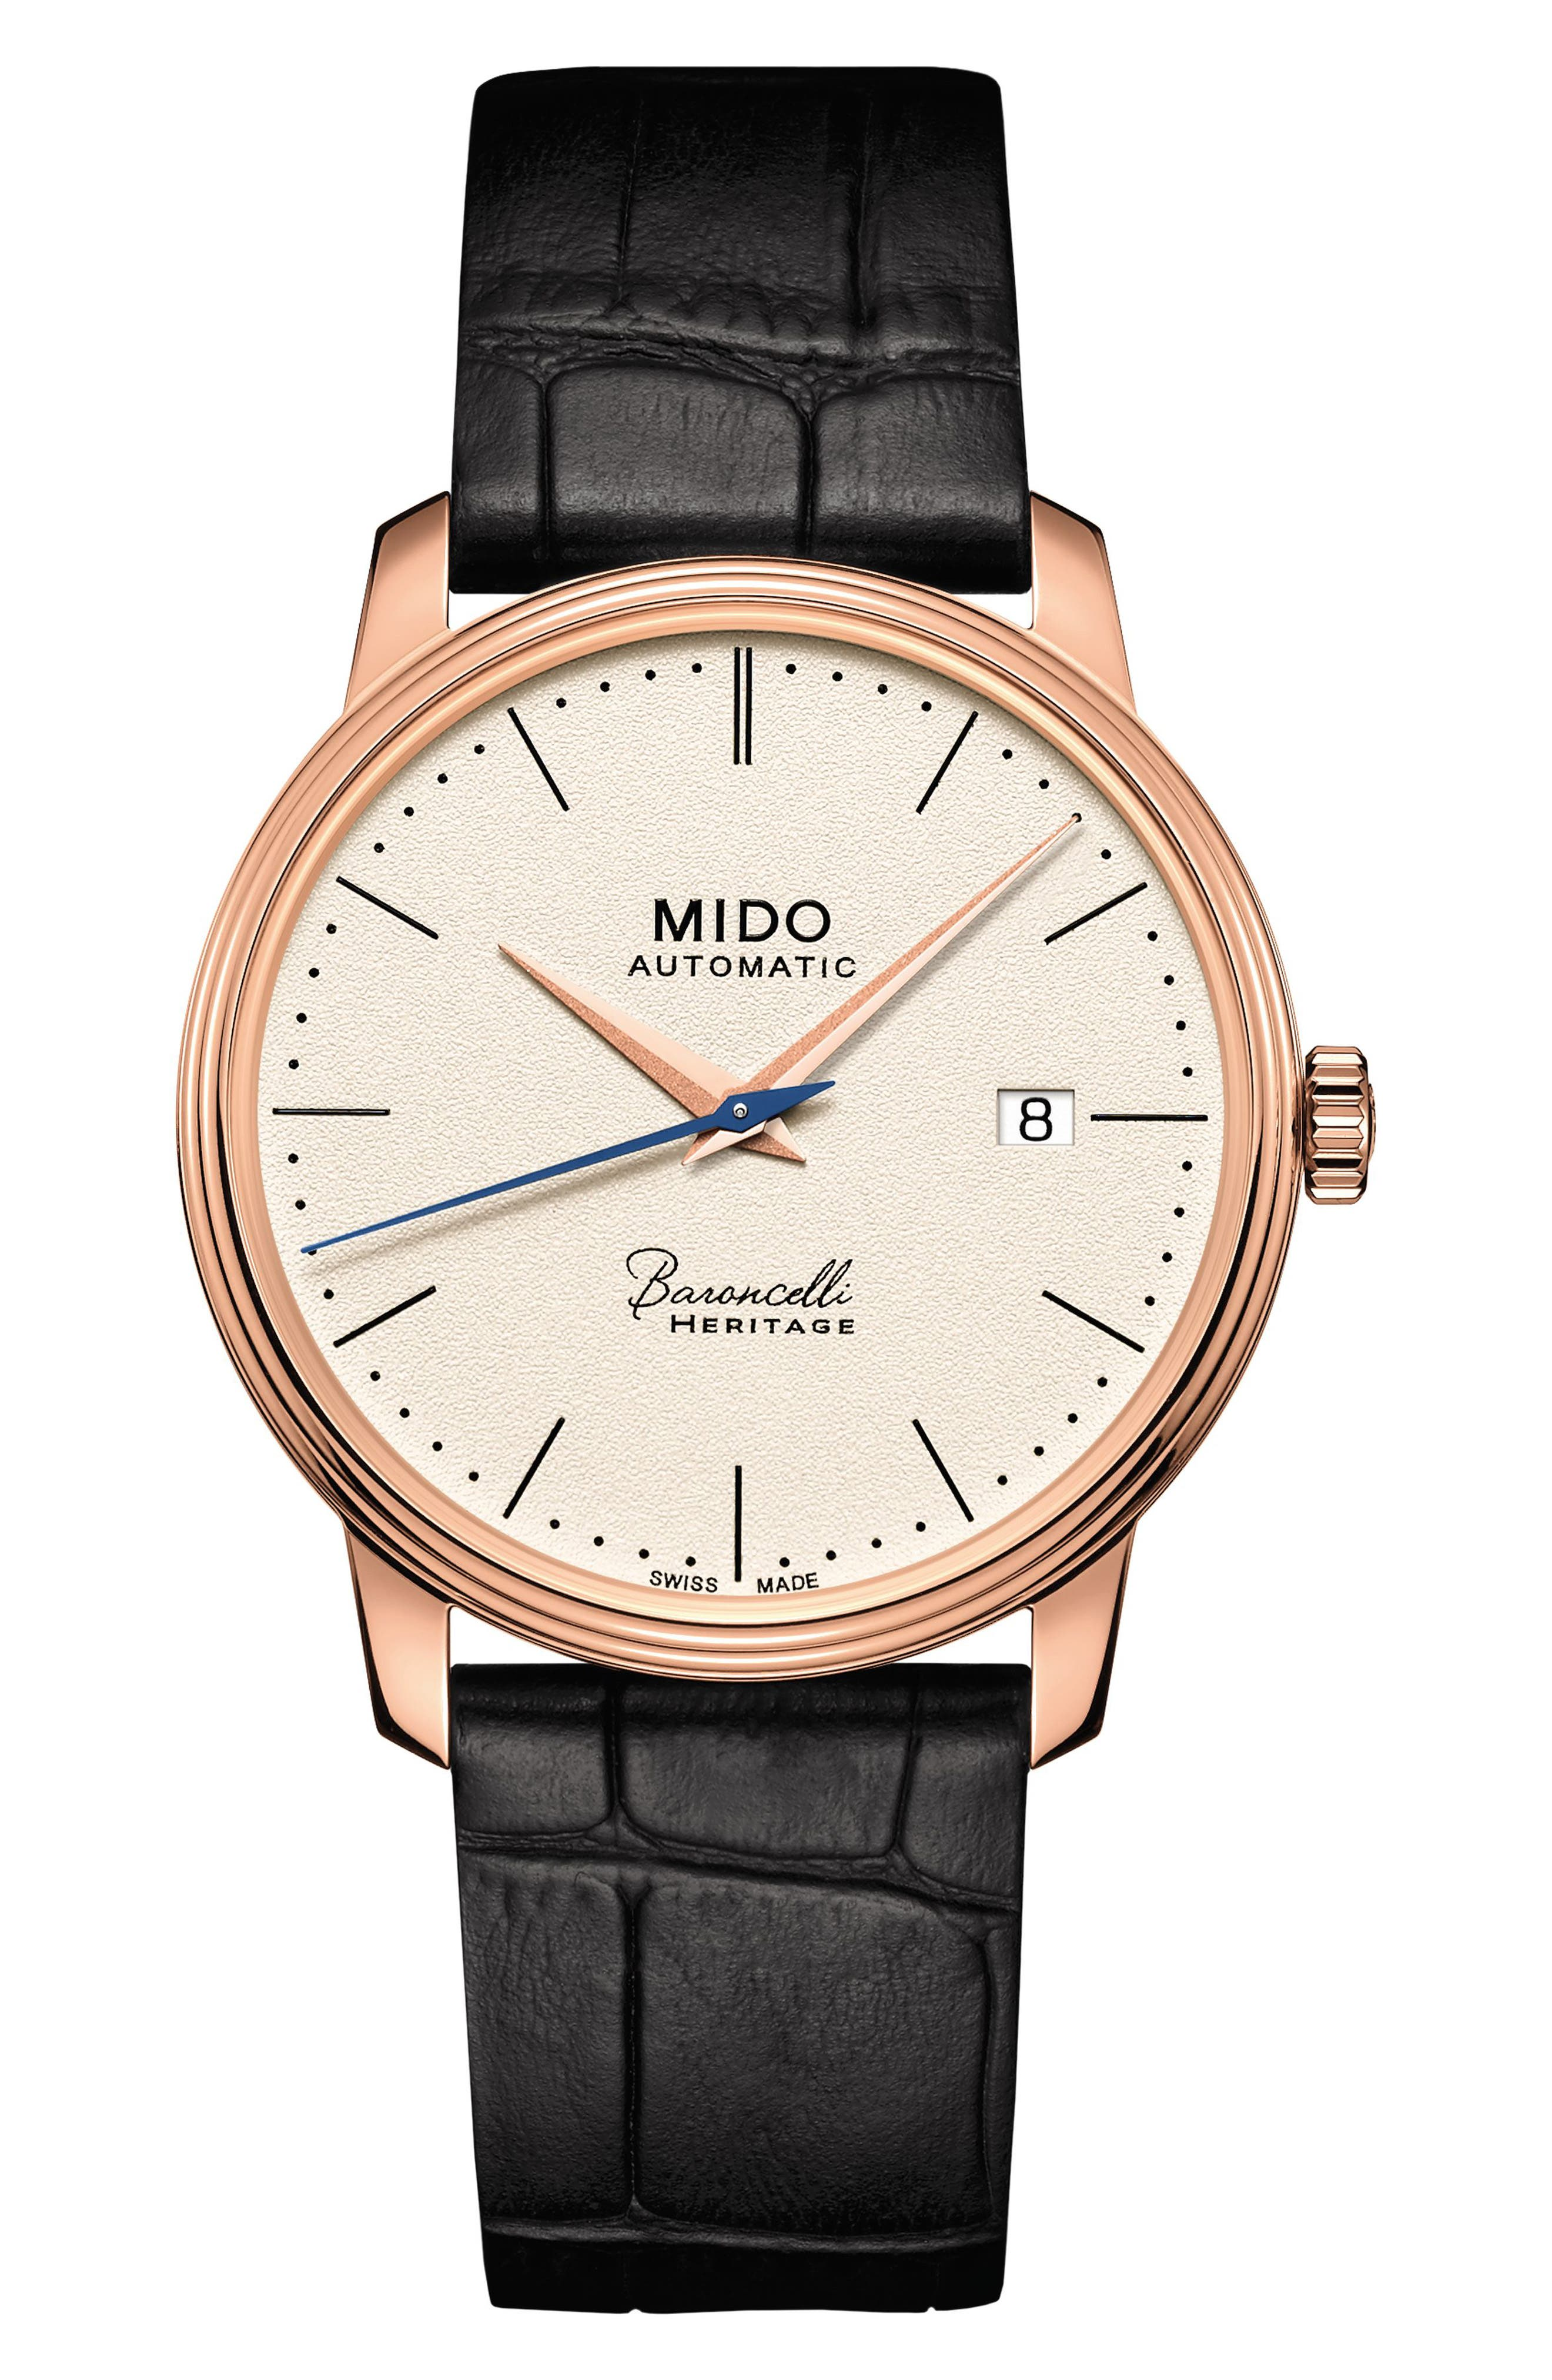 Baroncelli Heritage Automatic Leather Strap Watch, 39mm,                             Main thumbnail 1, color,                             BLACK/ TAN/ ROSE GOLD